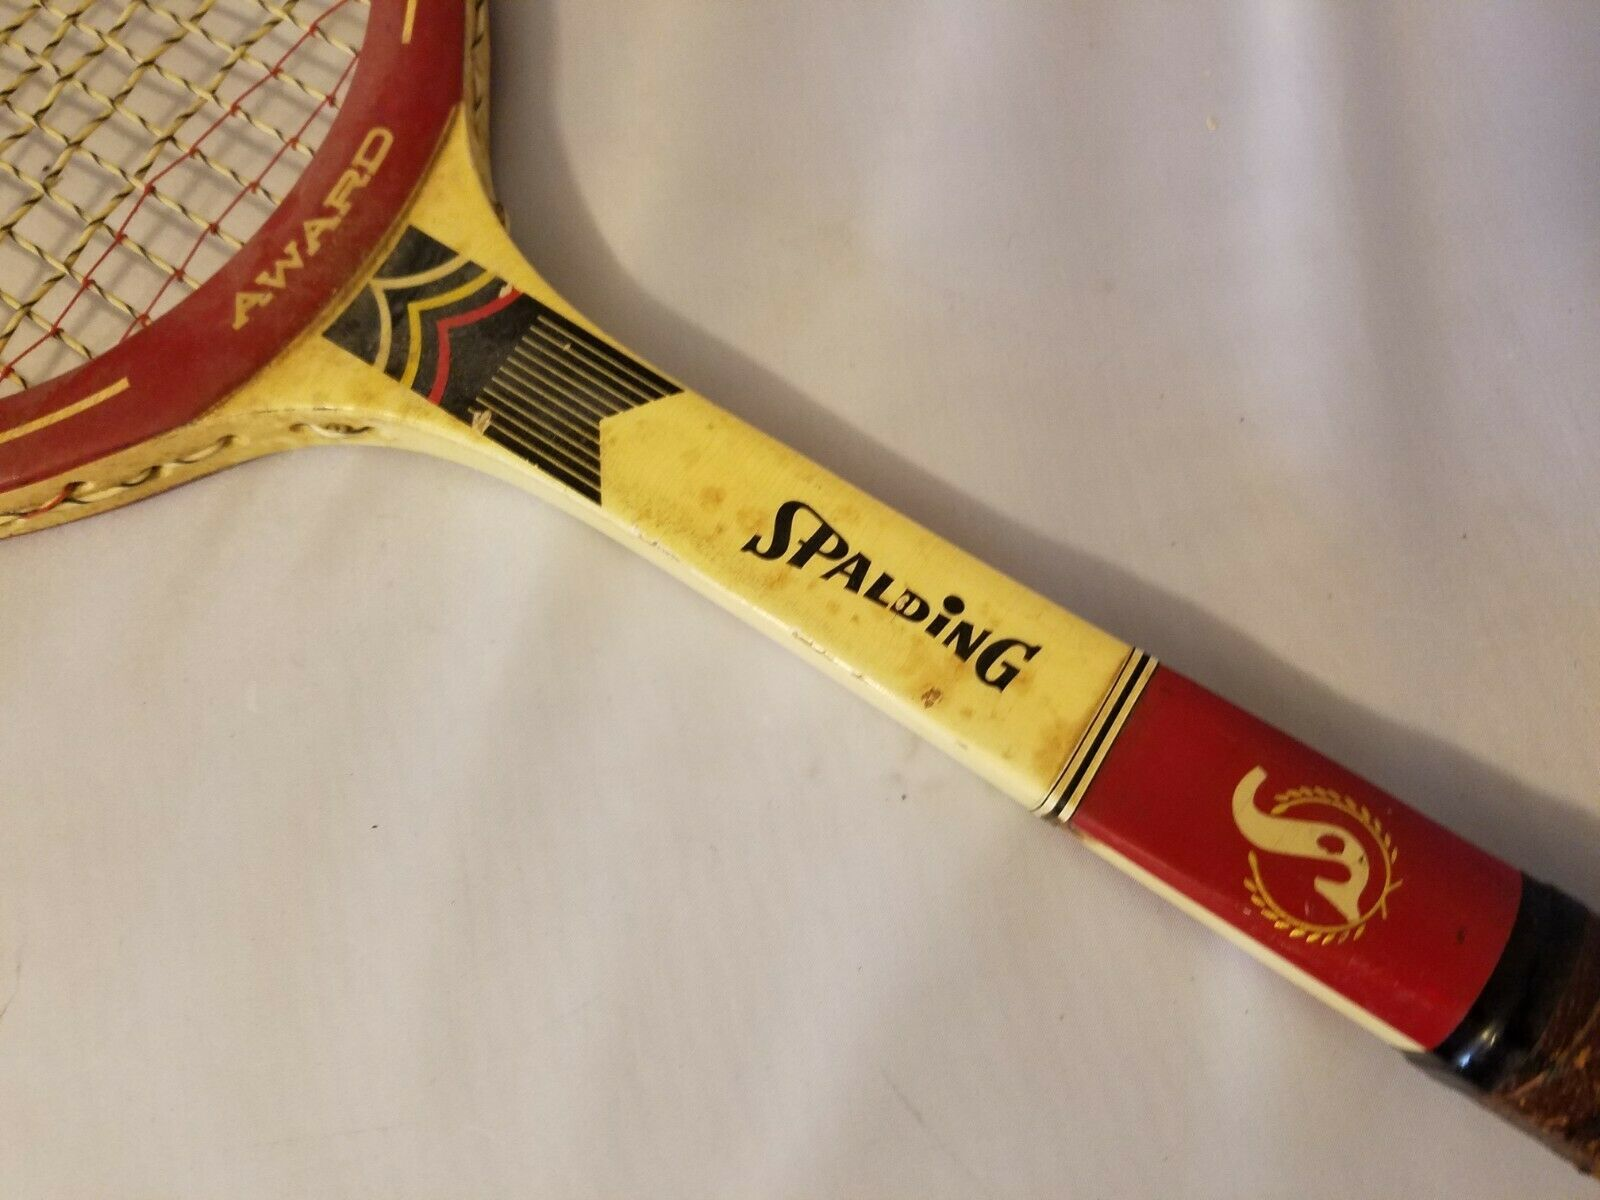 Spalding Award Vintage Tennis Racquet Racket Wood With Wooden Case